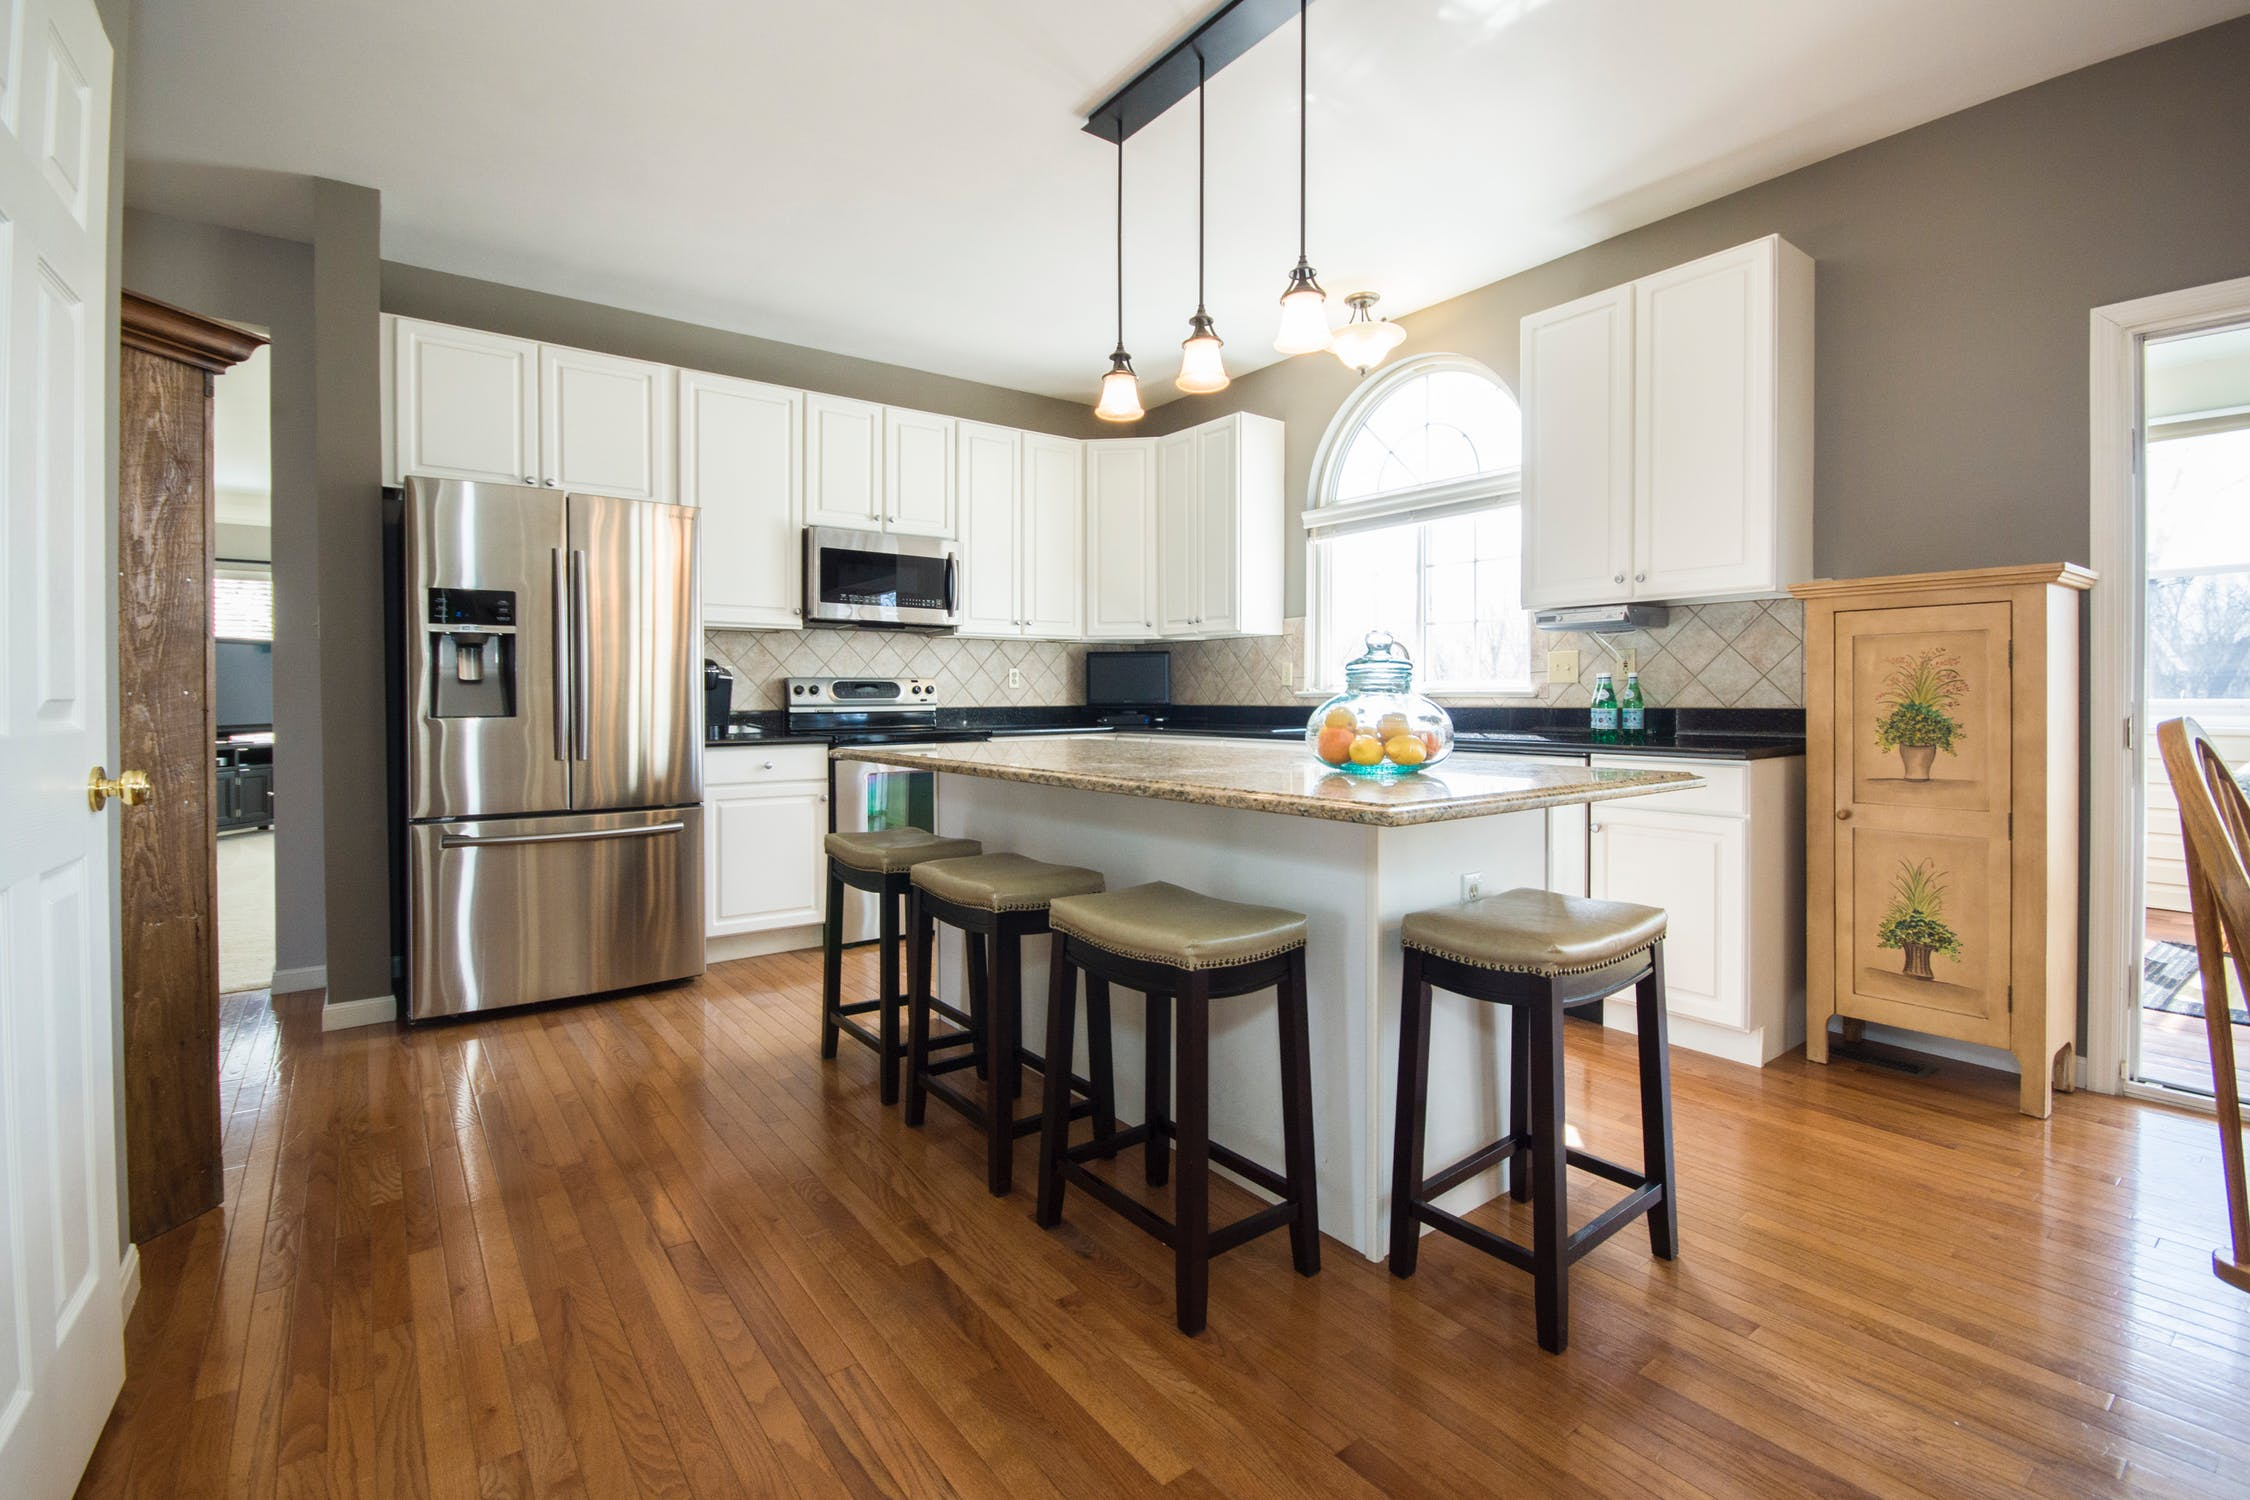 Simple ways to maintain your kitchen island in good shape